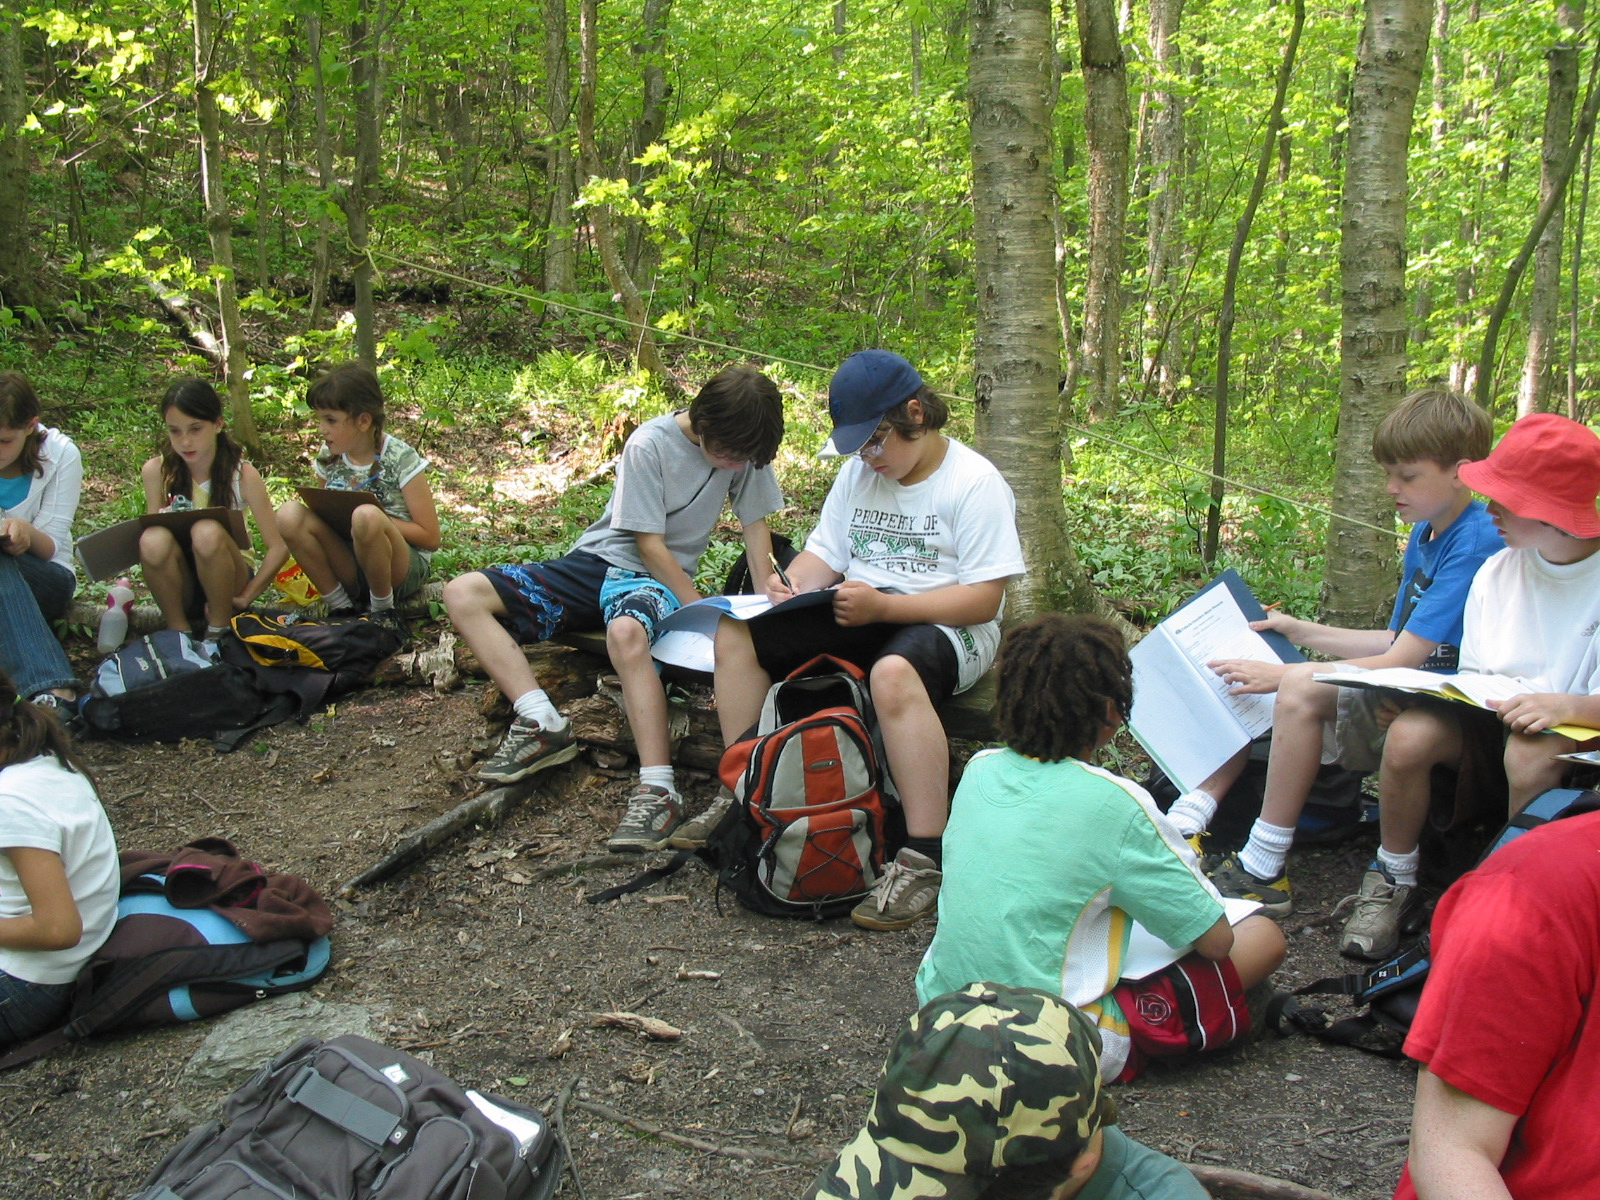 Kids working on project in woods